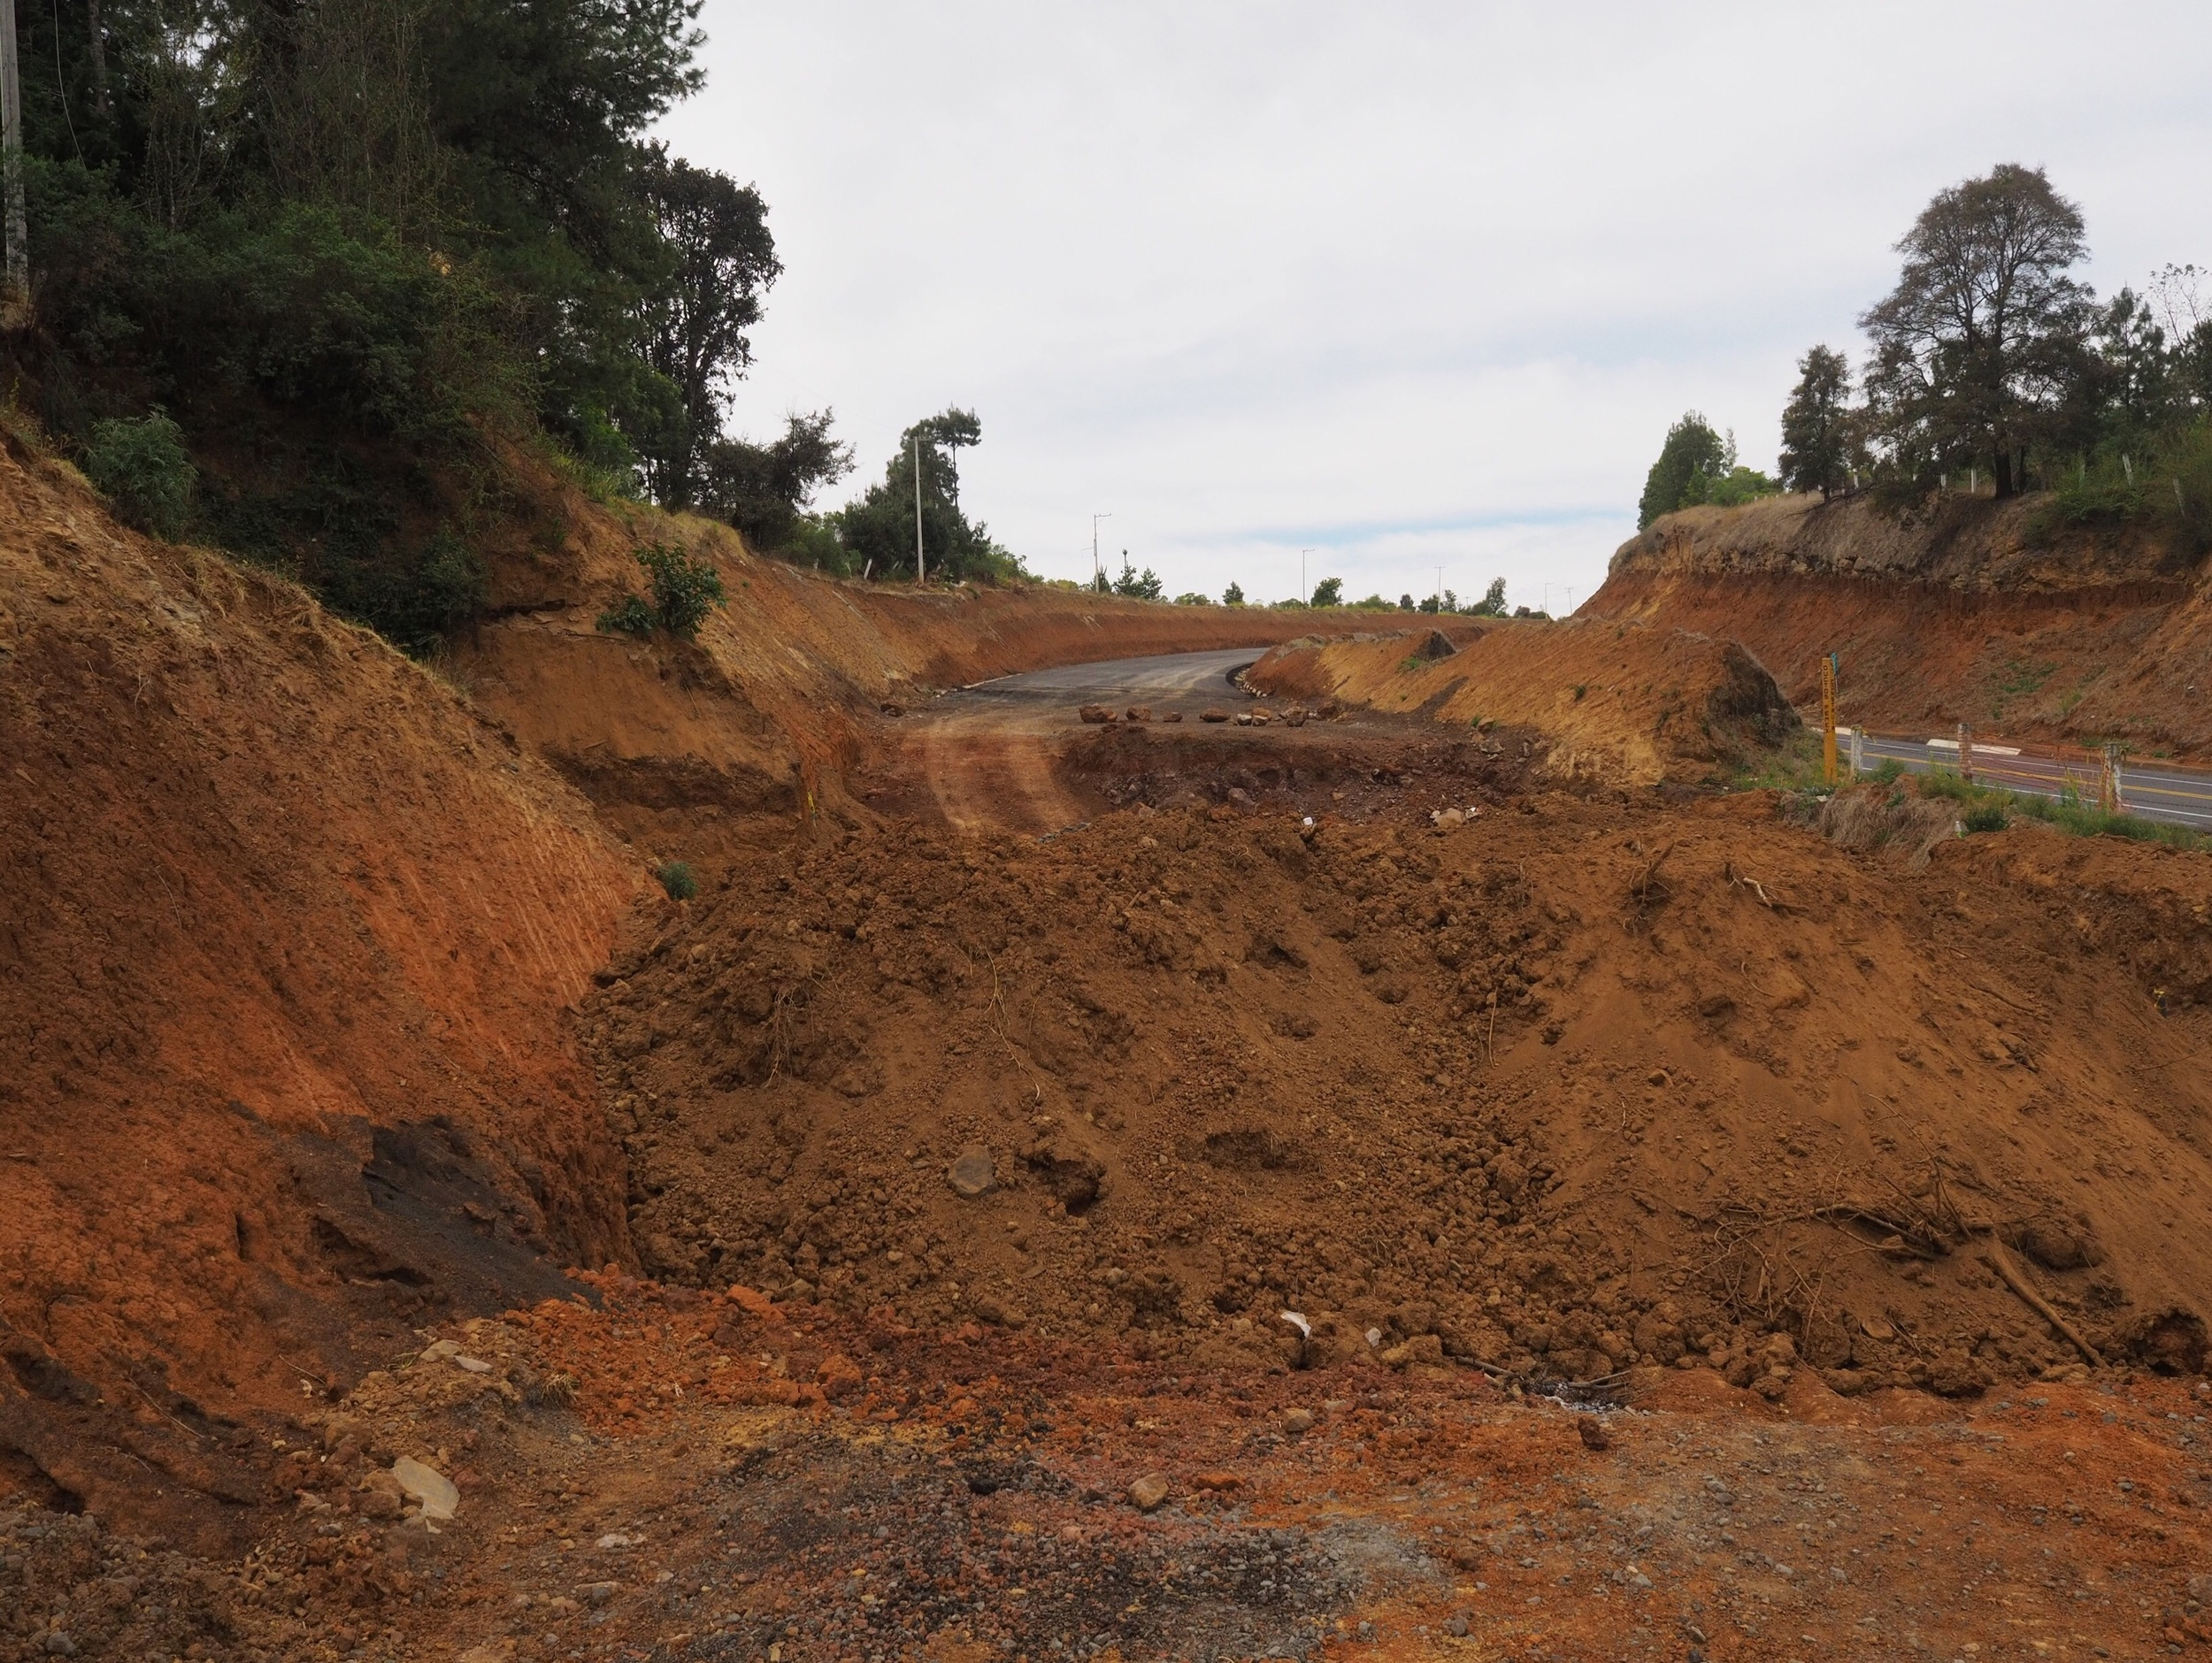 Widening the autopista outside Patzcuaro - we took the opportunity to ride the new road without traffic, but it turned into this